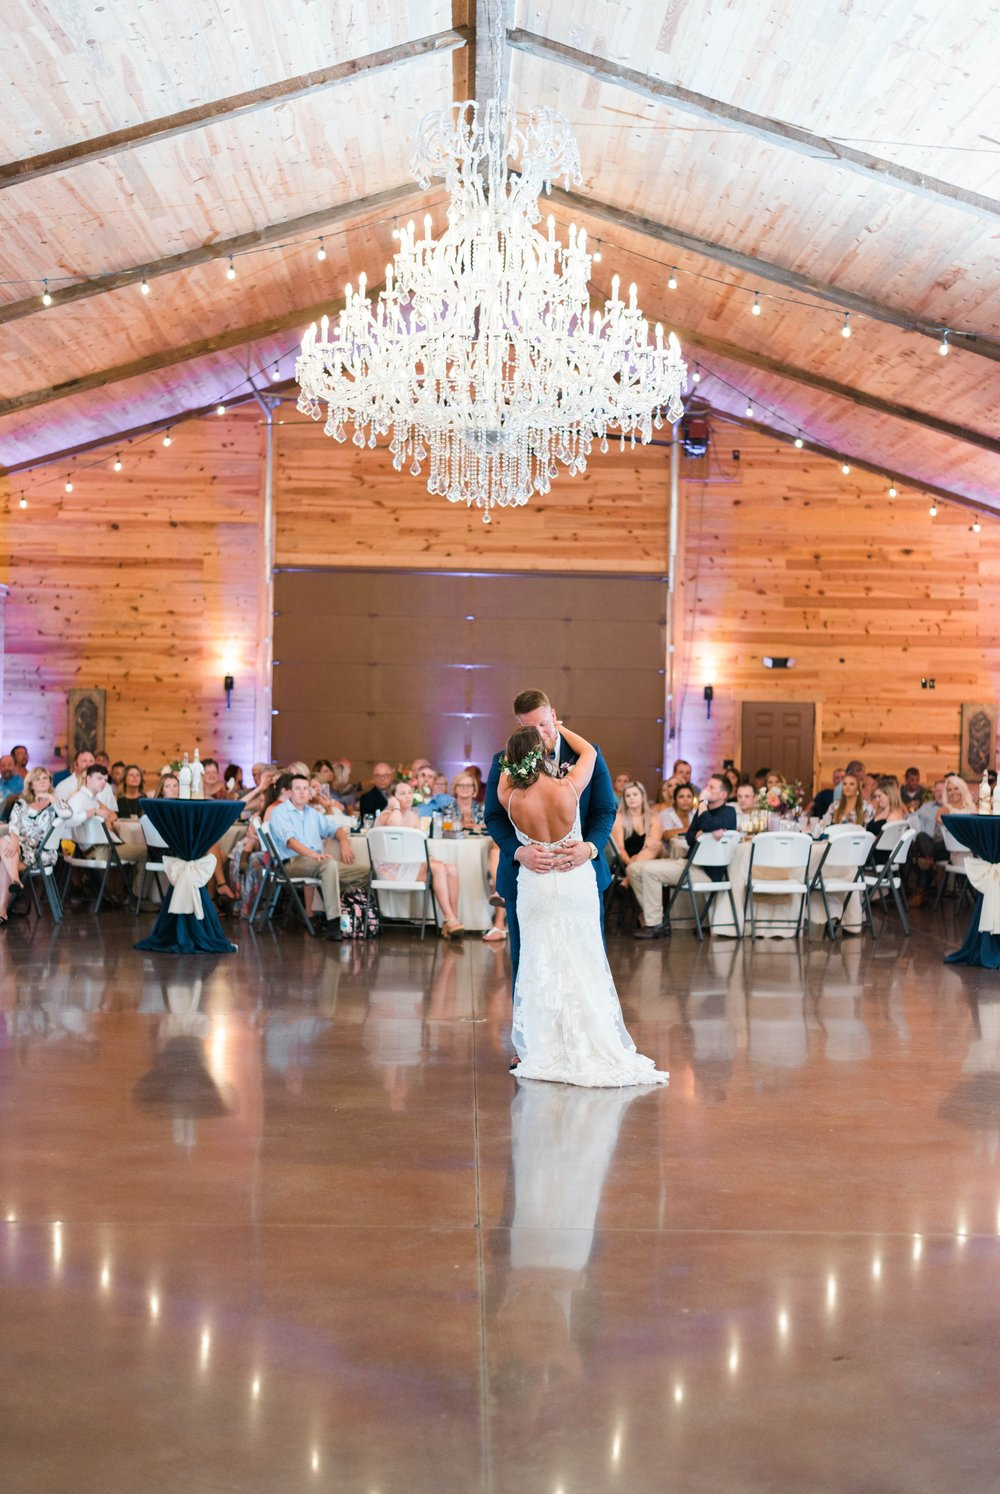 atkinson farms_VirginiaWeddingPhotographer_LynchburgWeddingPhotographer_DylanandLauren 39.jpg